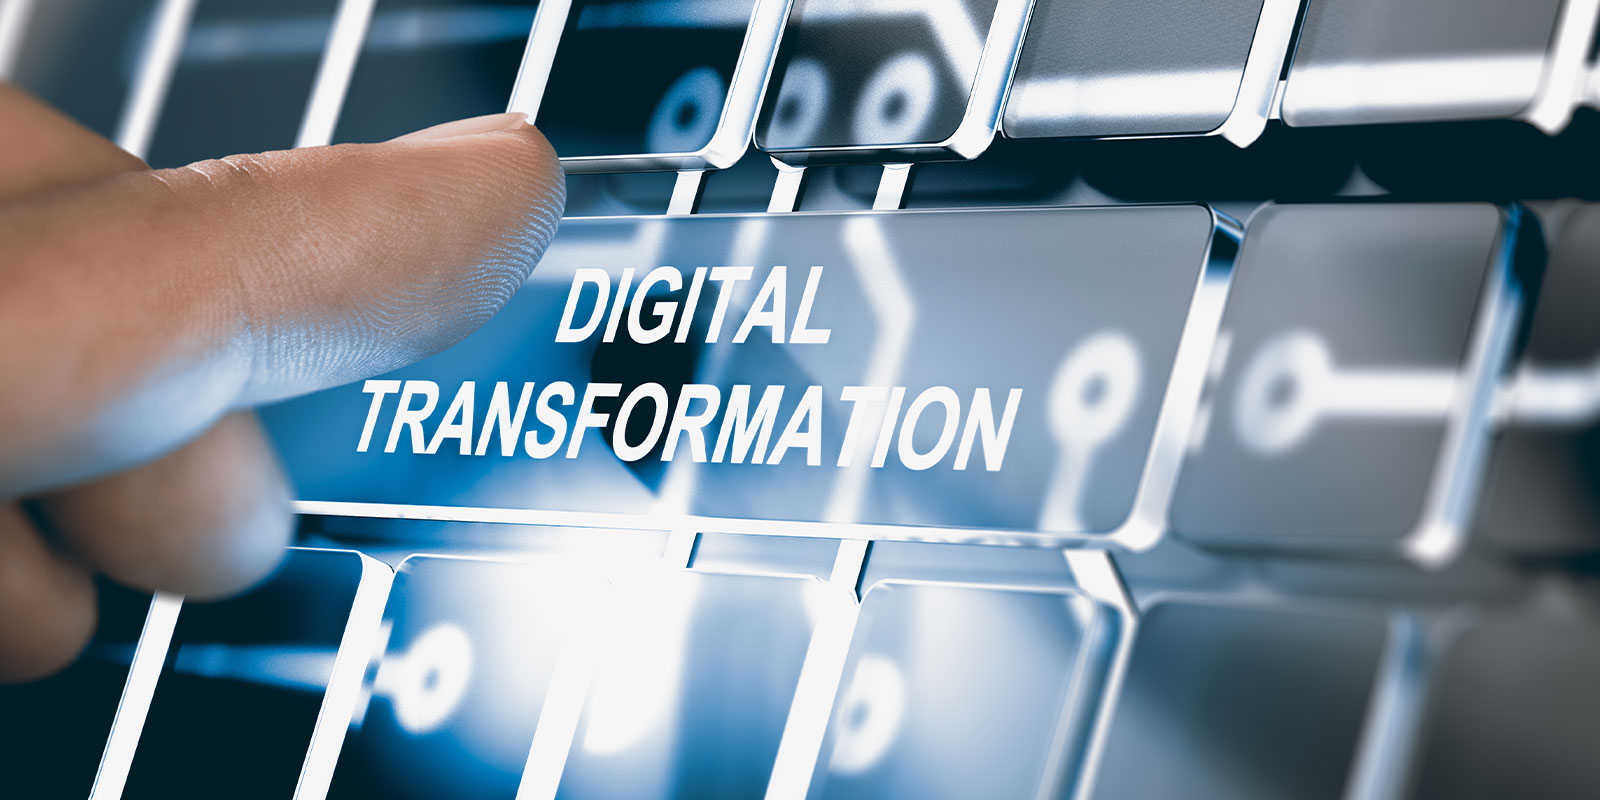 digital transformation on a key board